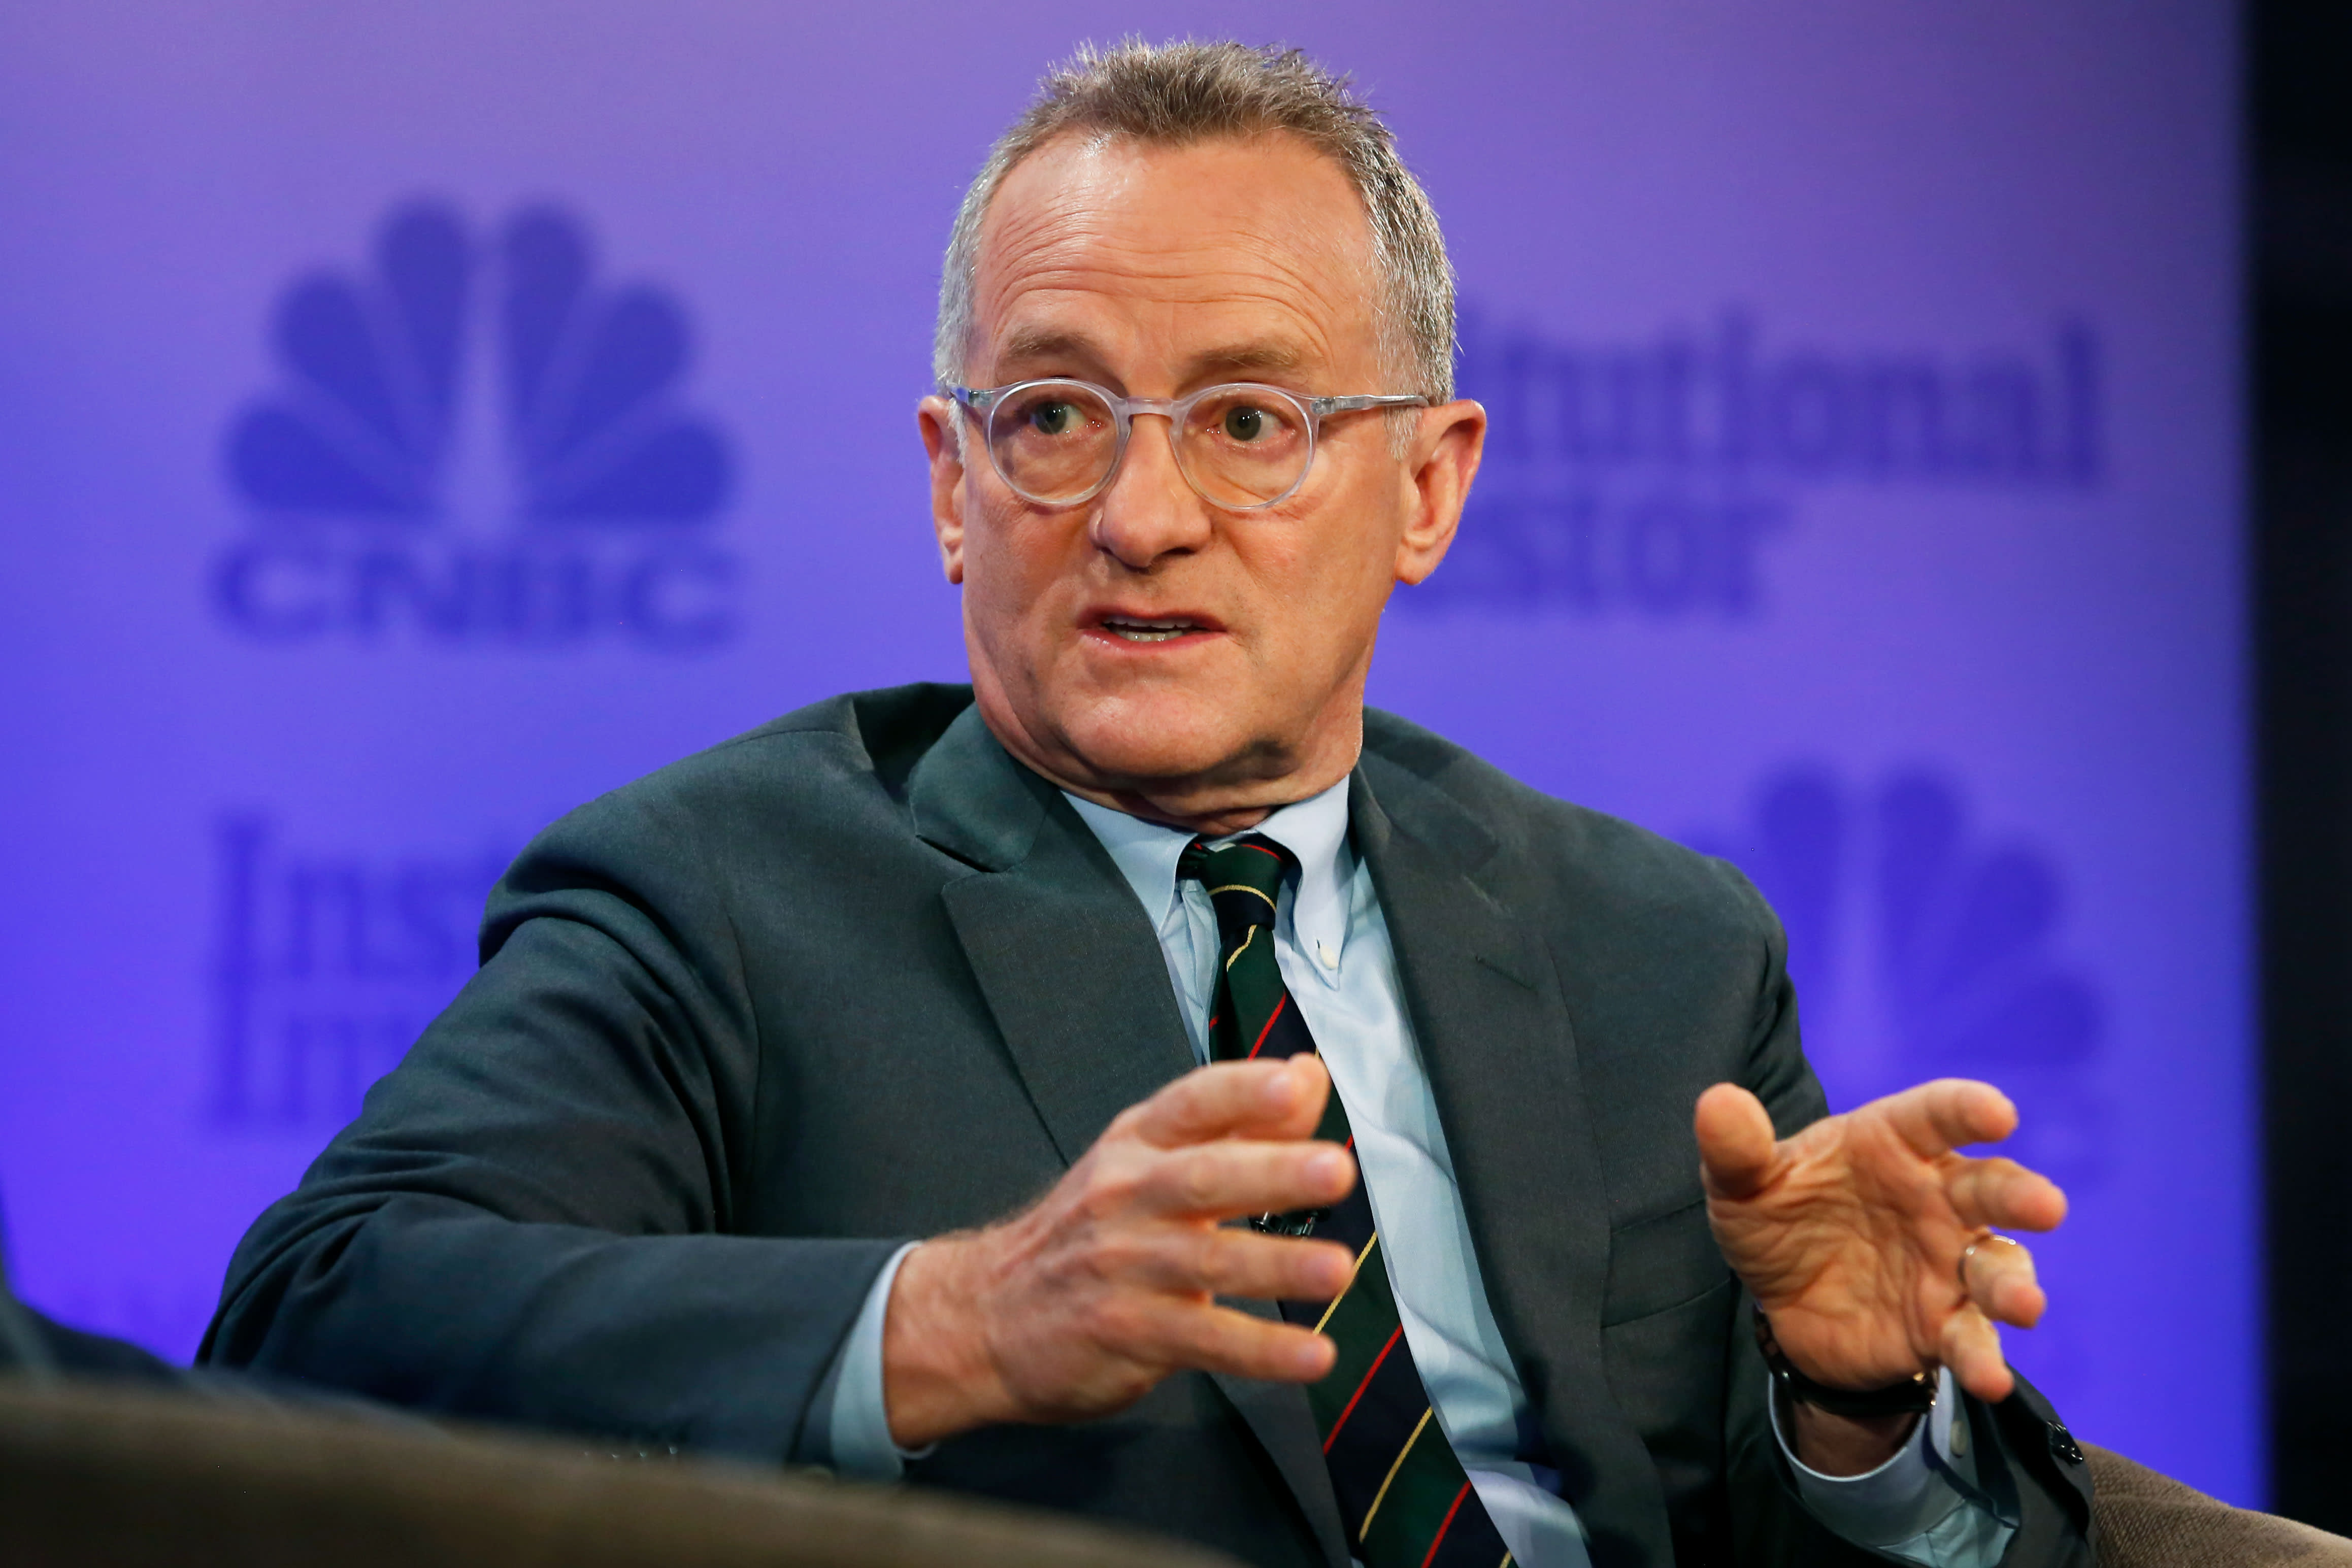 Billionaire investor Howard Marks says investors are 'not discriminating' between stocks as market sells off